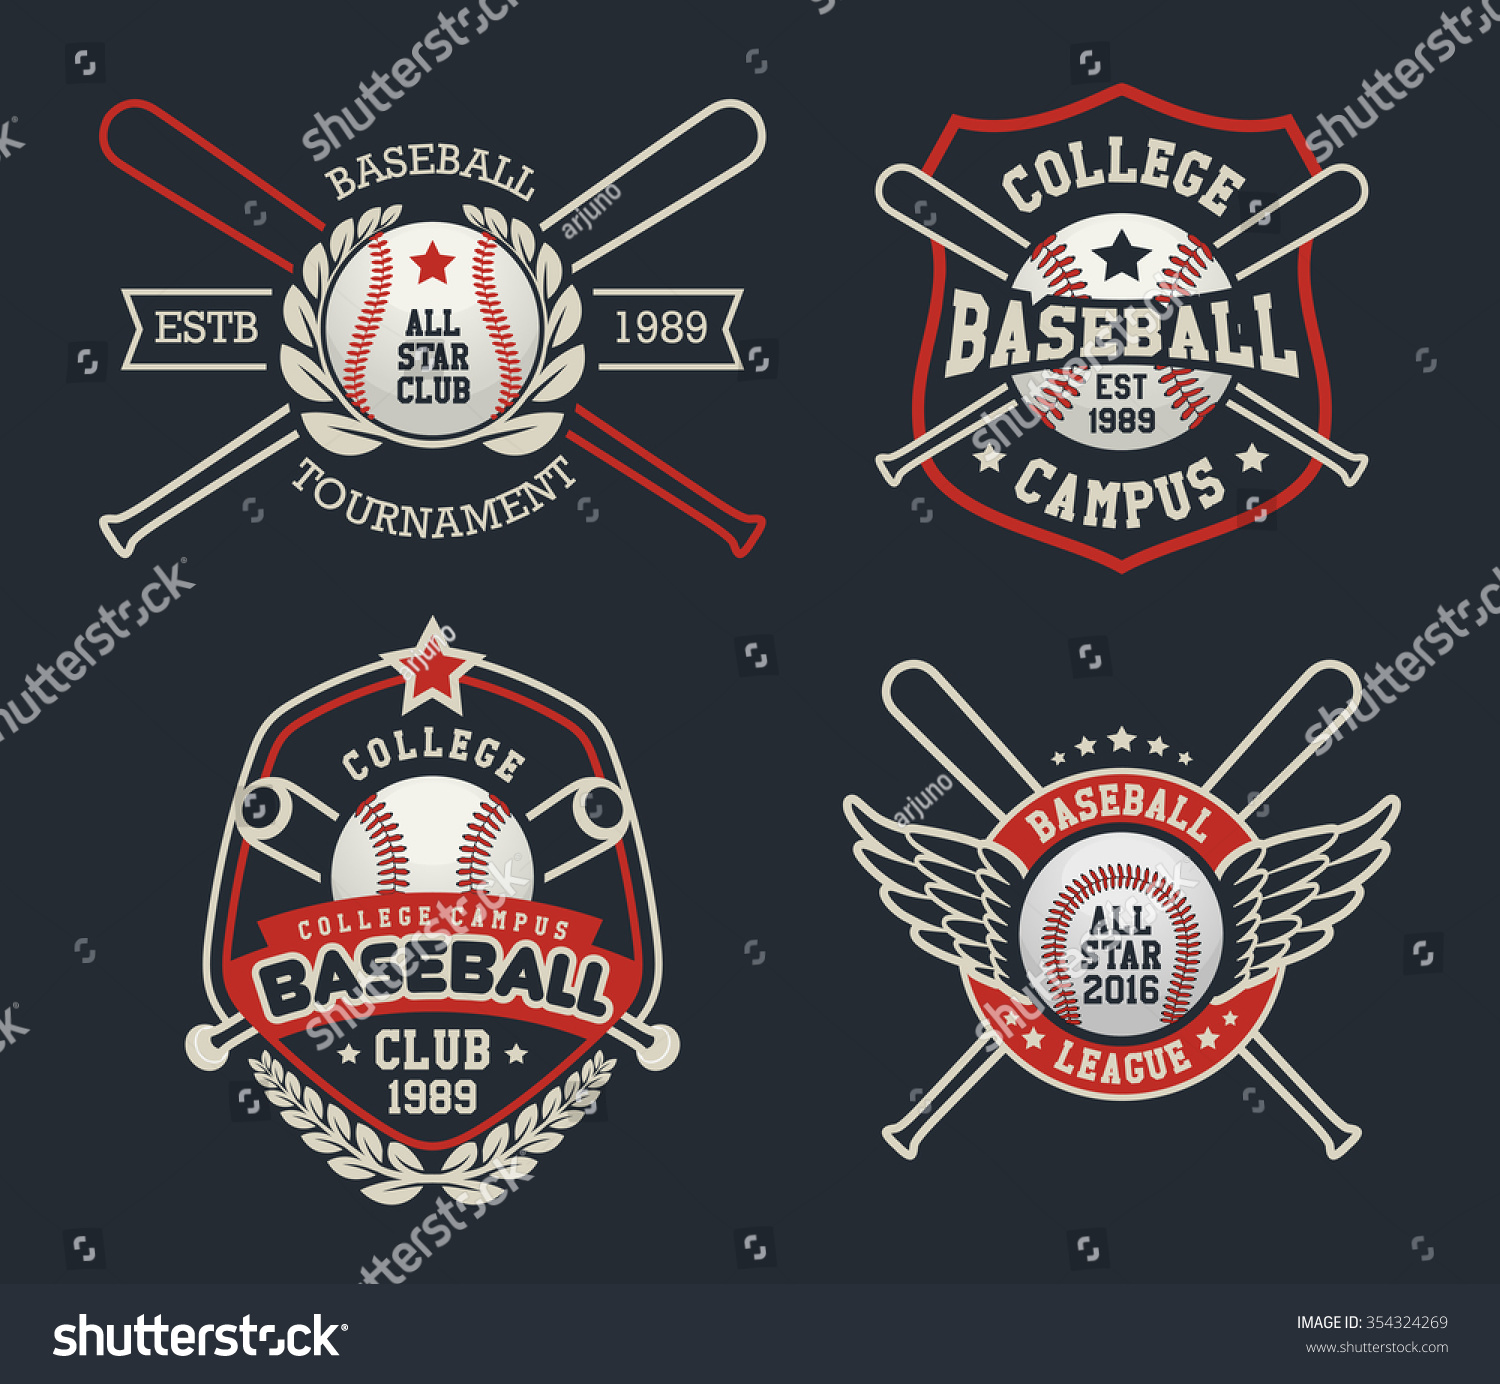 Baseball T Shirt Designs Ideas high school baseball t shirt logos liberty high school girls soccer team personalized t Baseball Badge Logo Design Suitable For Logos Badge Banner Emblem Label